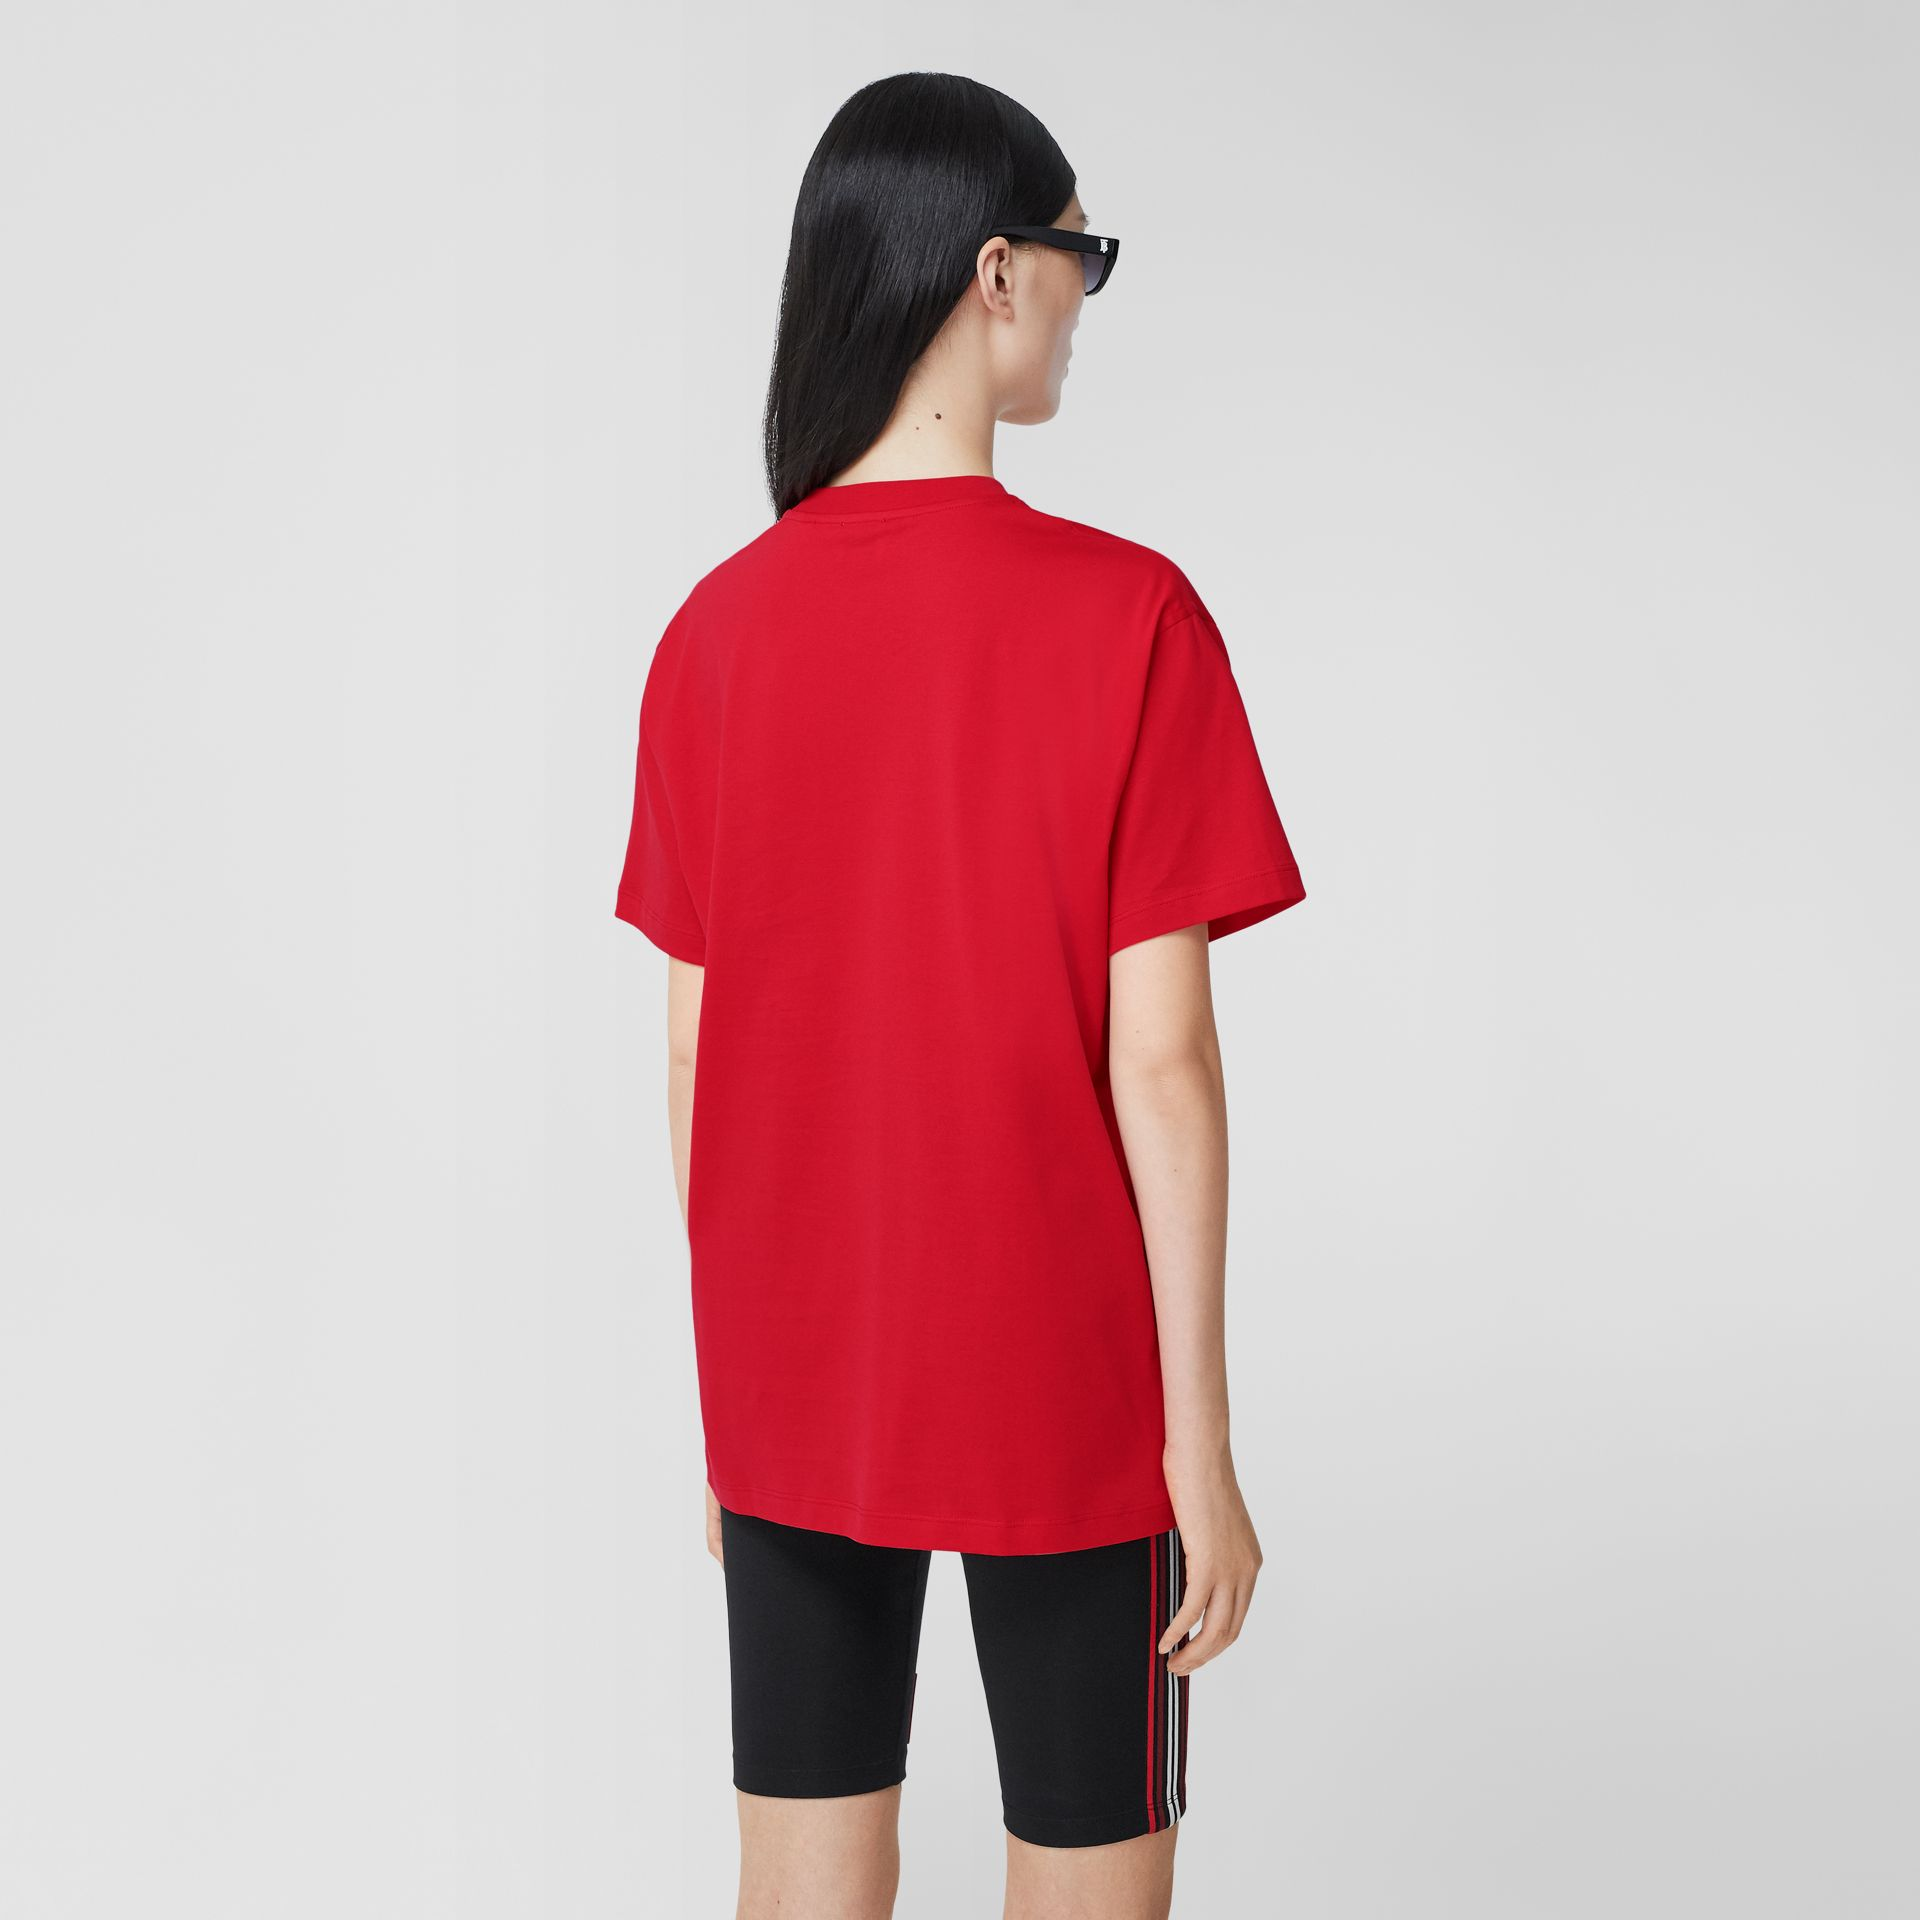 Monogram Motif Cotton Oversized T-shirt in Bright Red - Women | Burberry - gallery image 2